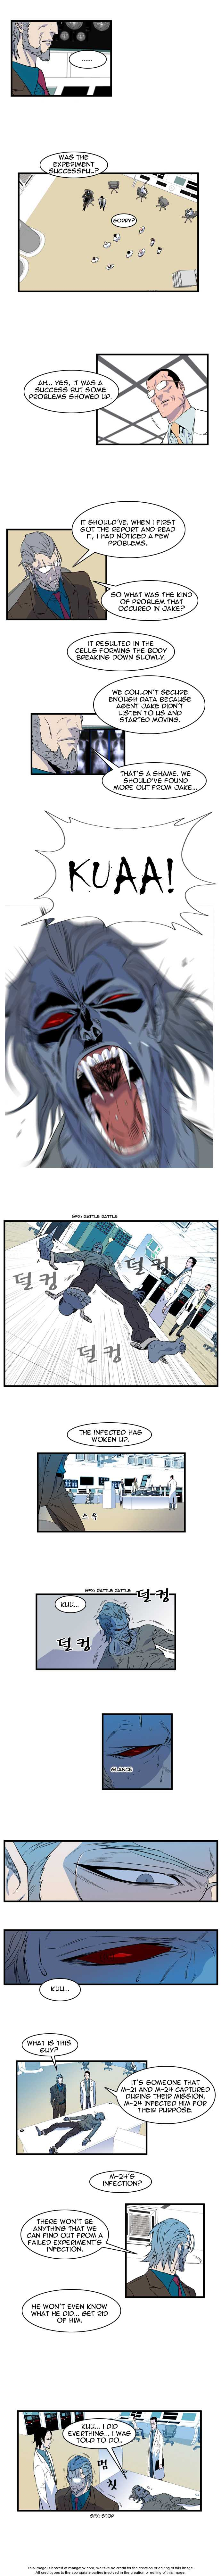 Noblesse 80 Page 2